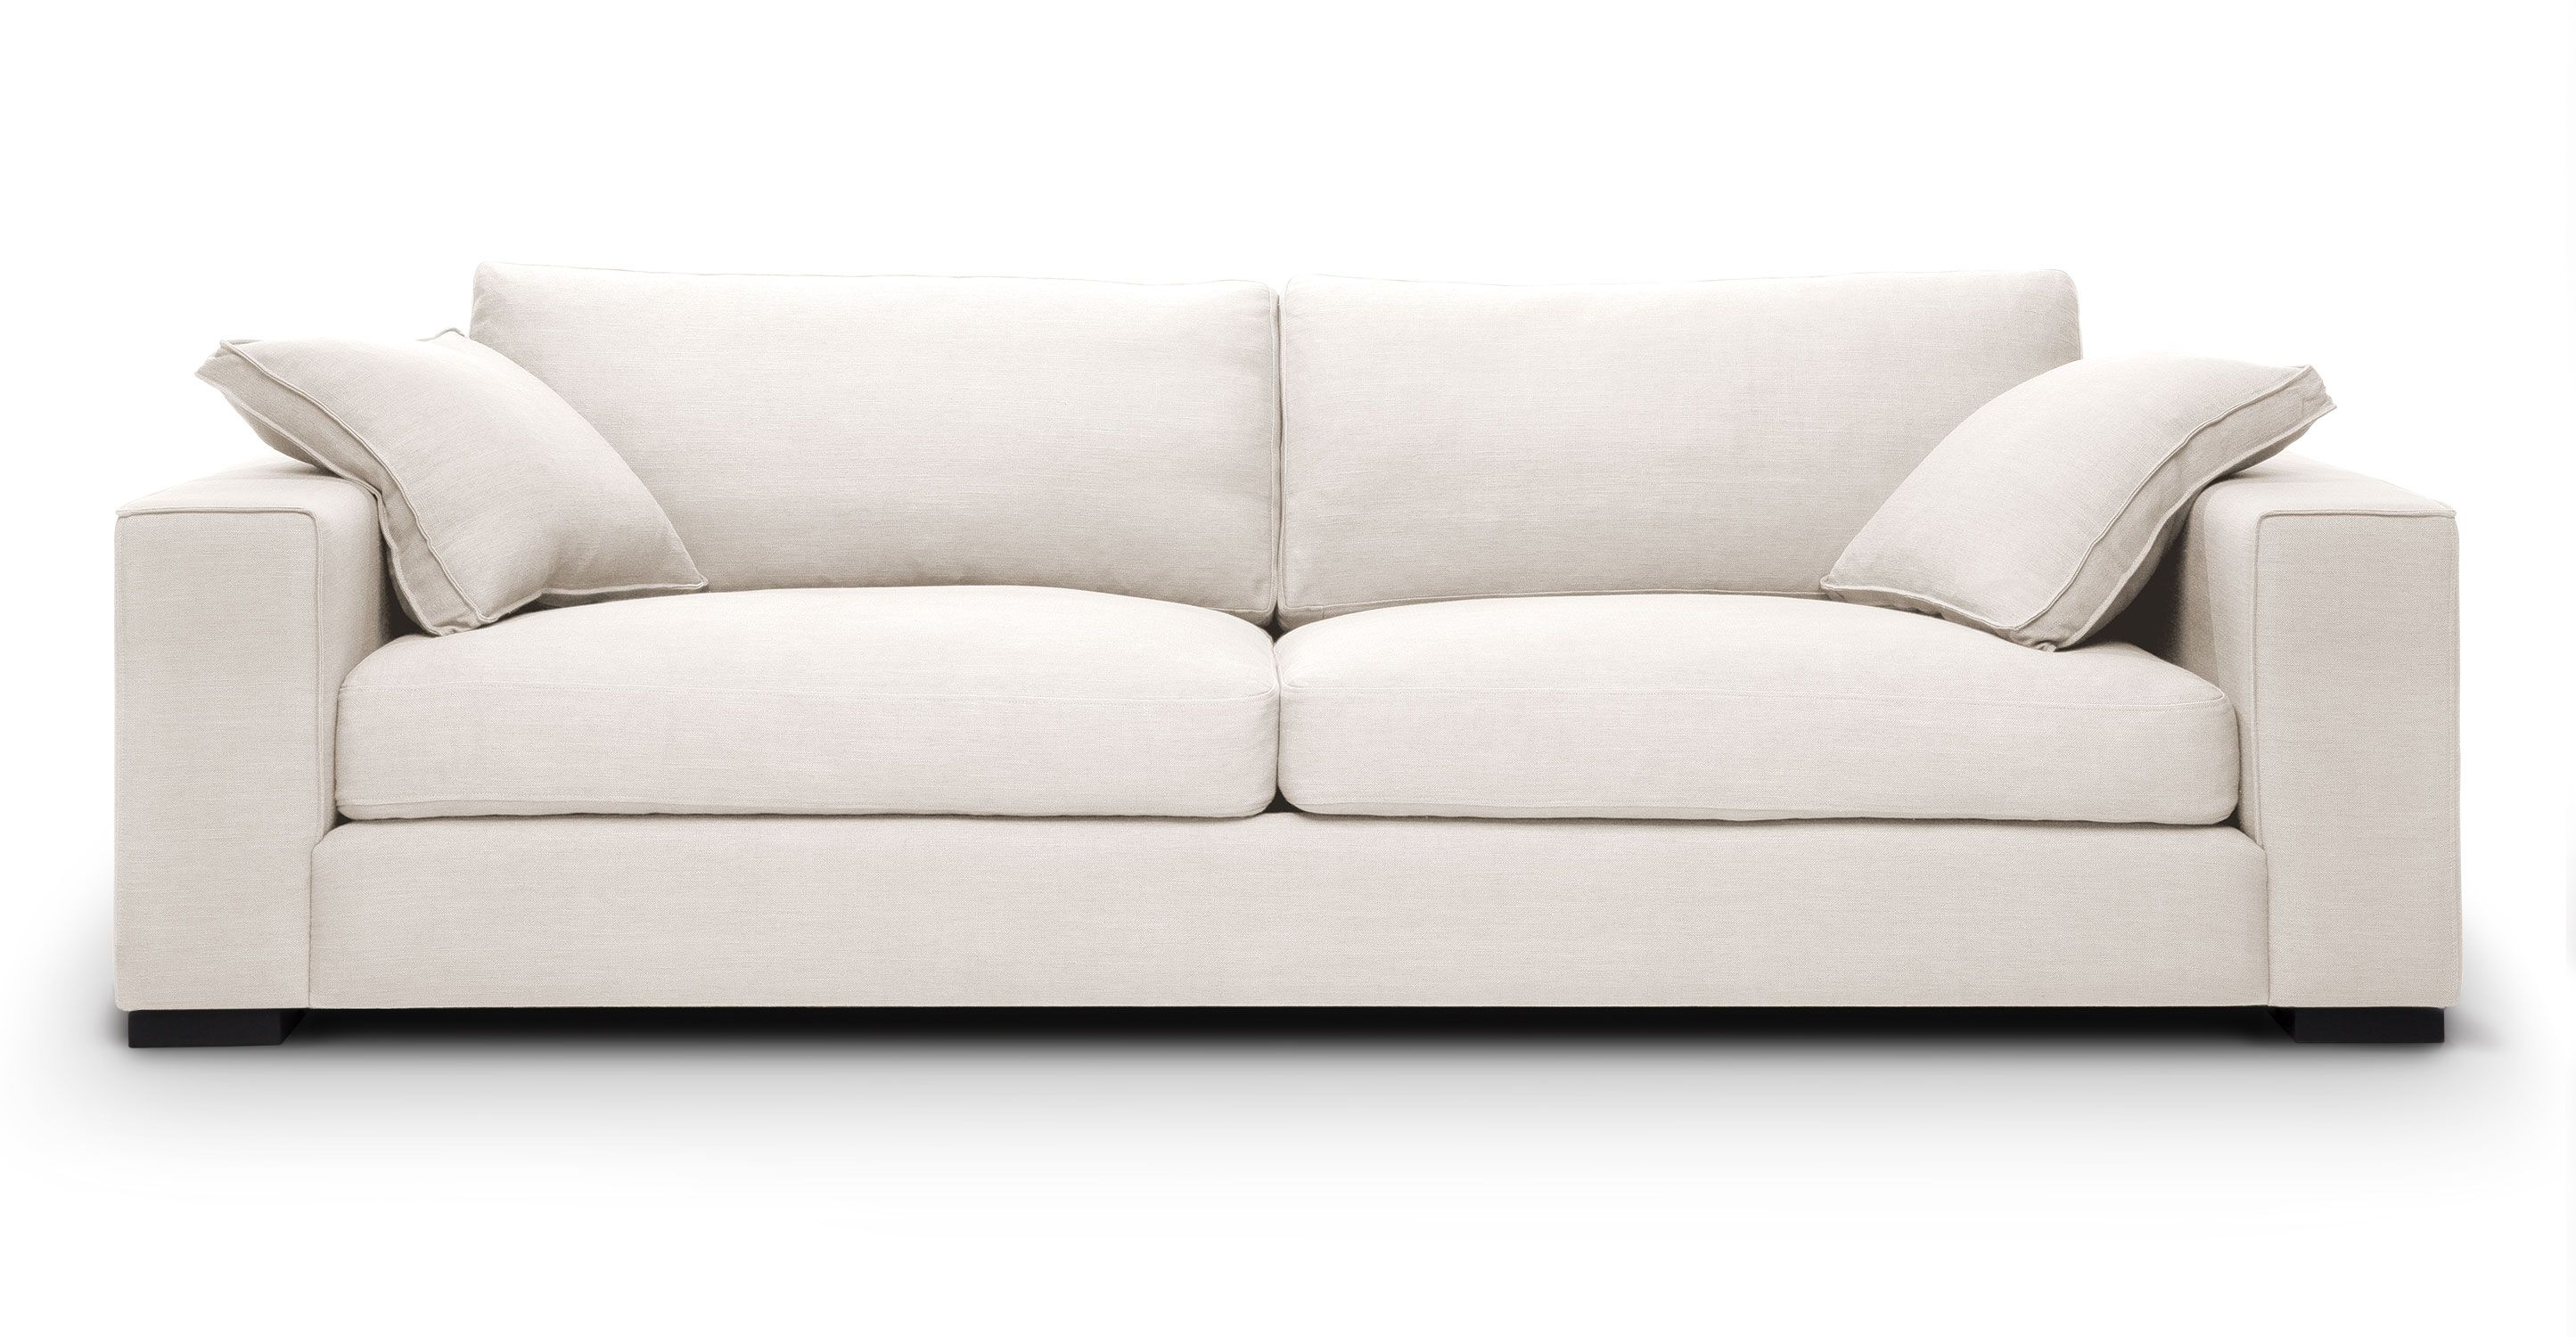 Sitka Quartz White Sofa White Sofas Modern Sofa Contemporary Sofa